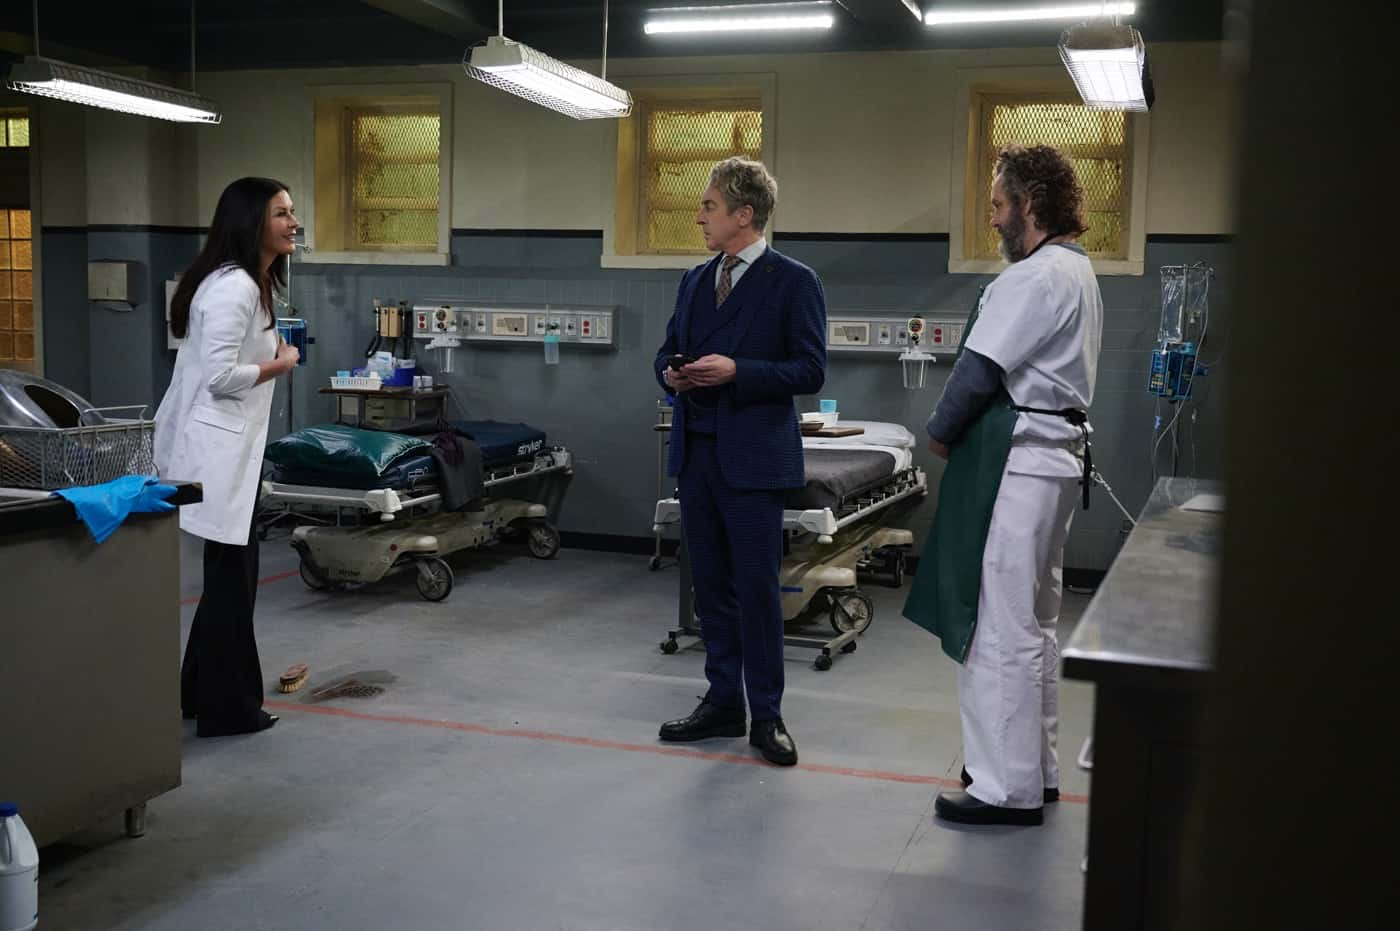 PRODIGAL SON Season 2 Episode 8 : L-R: Special guest star Catherine Zeta-Jones, guest star Alan Cumming and Michael Sheen in the Ouroboros episode of PRODIGAL SON airing Tuesday, April 13 (9:01-10:00 PM ET/PT) on FOX. ©2021 Fox Media LLC Cr: Phil Caruso/FOX